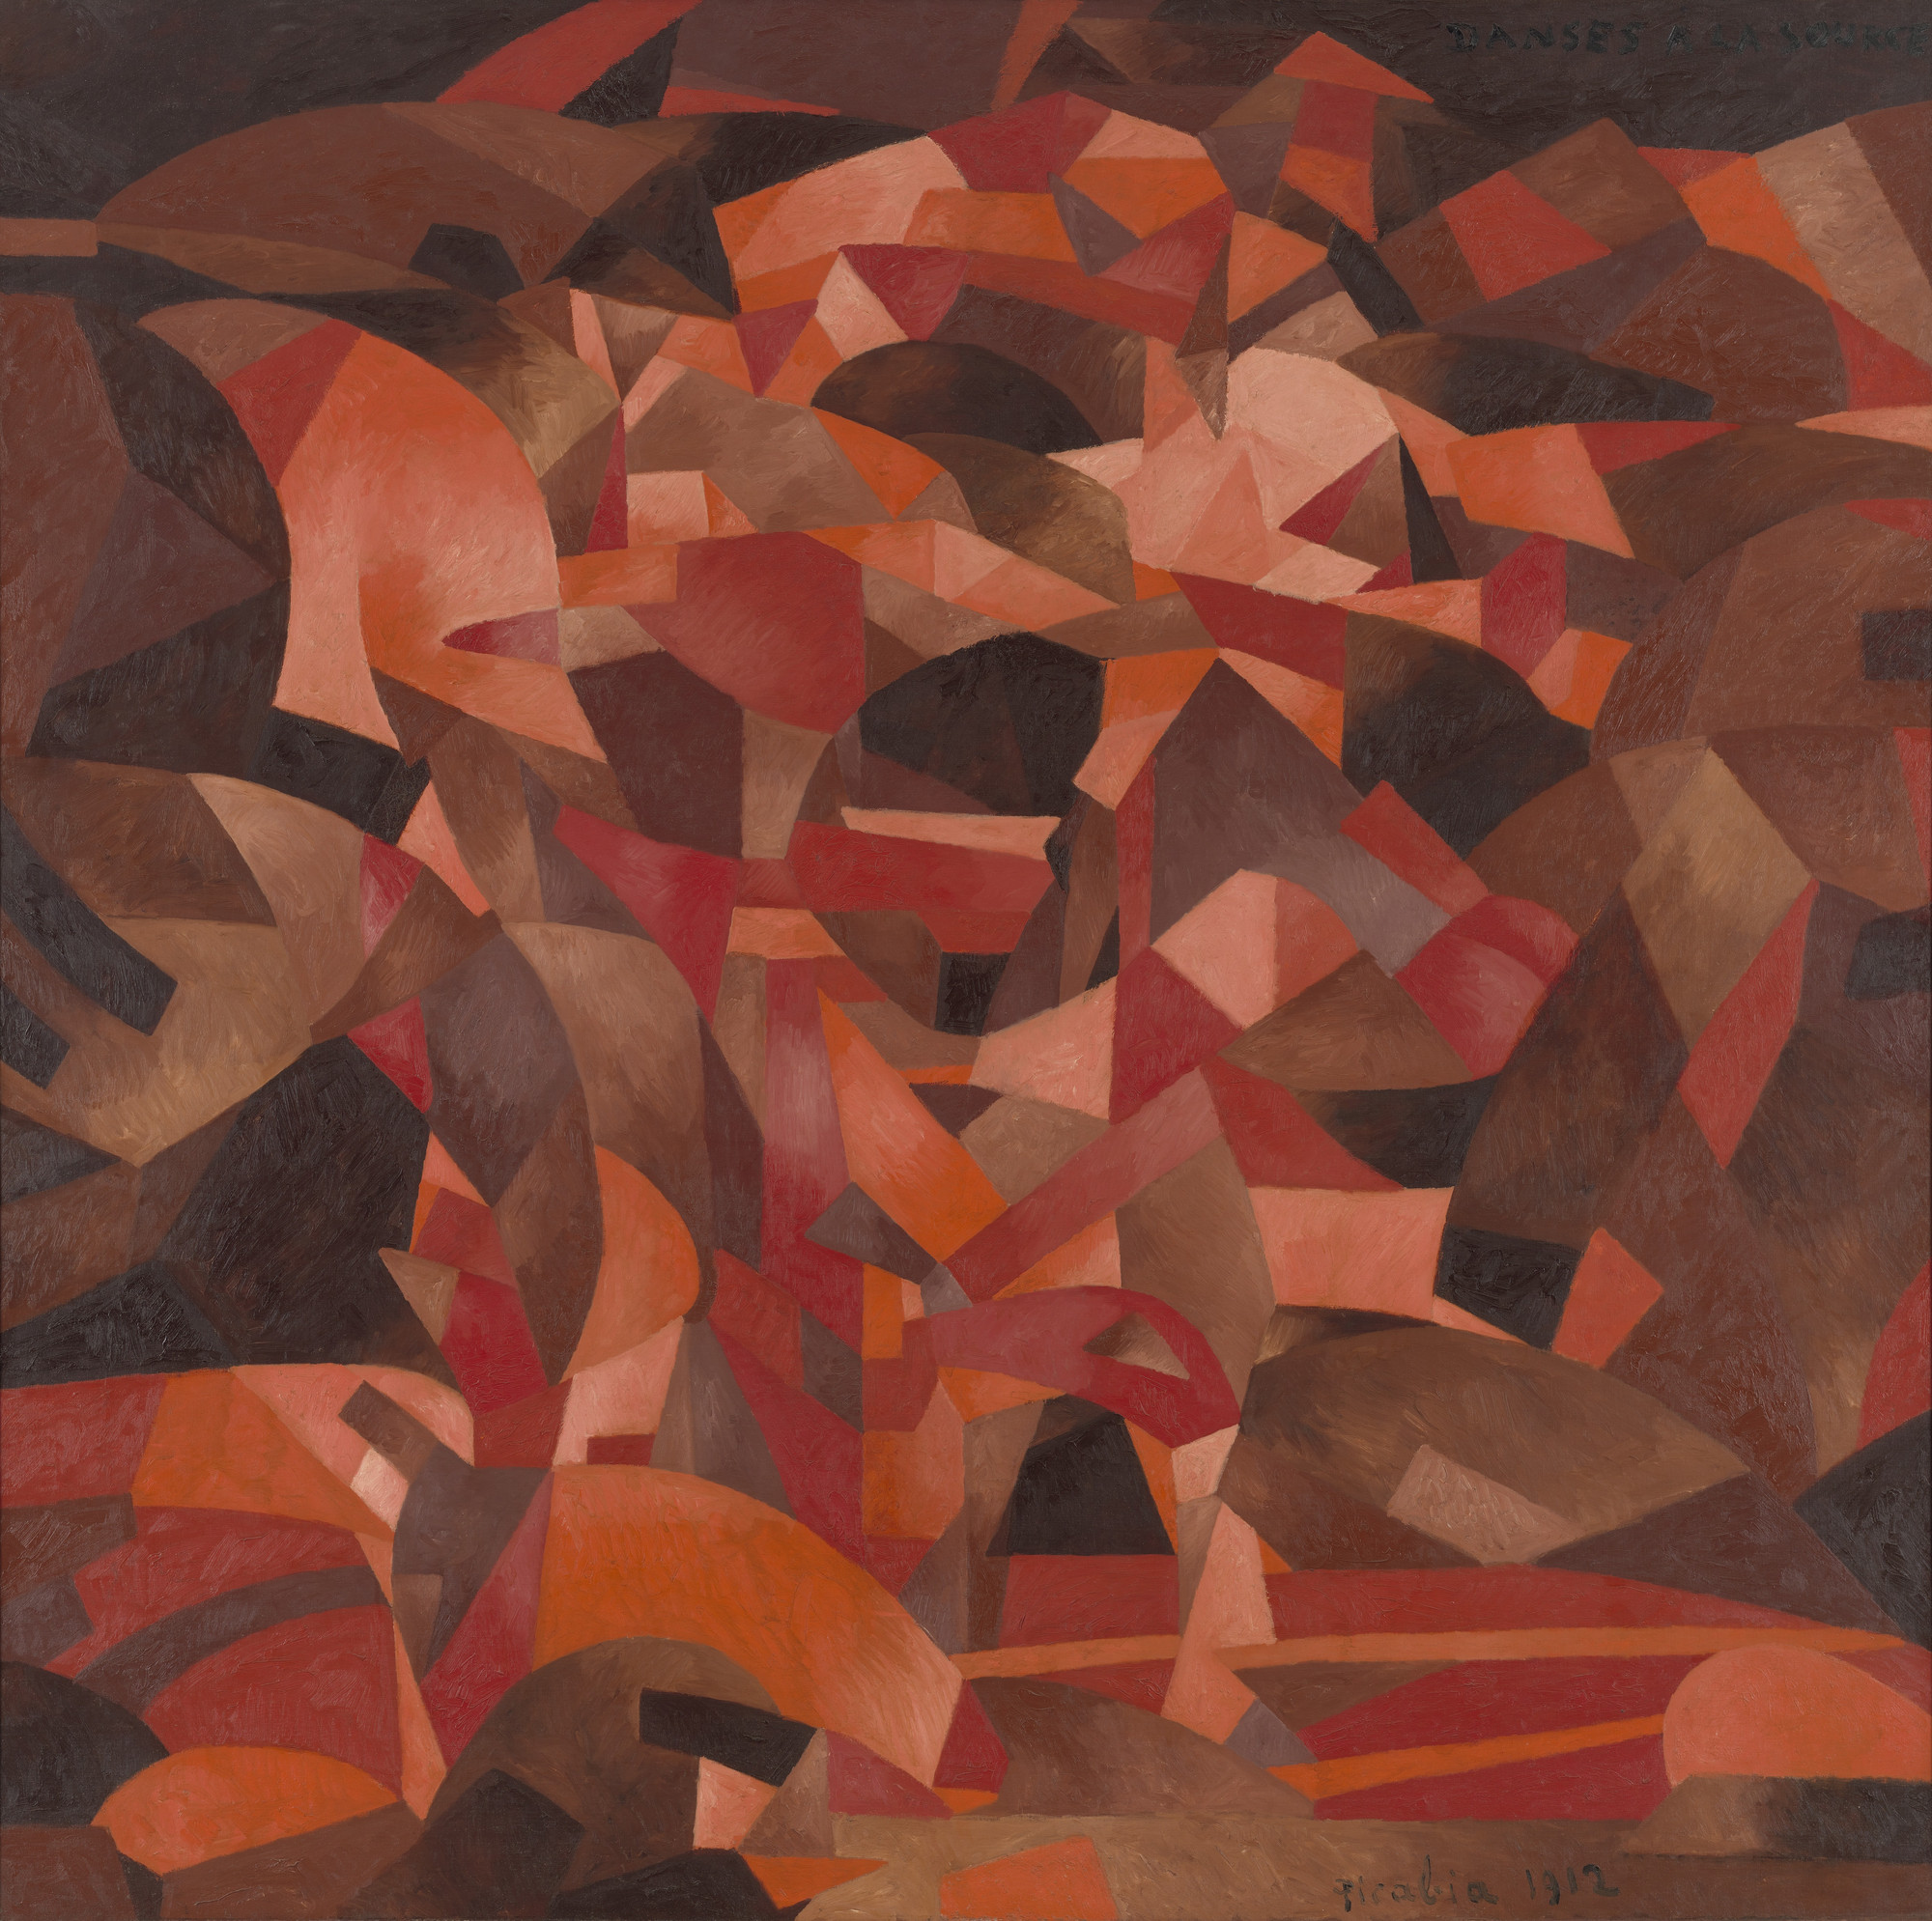 Francis Picabia. Dances at the Spring [II]. Saint Cloud, spring or summer 1912